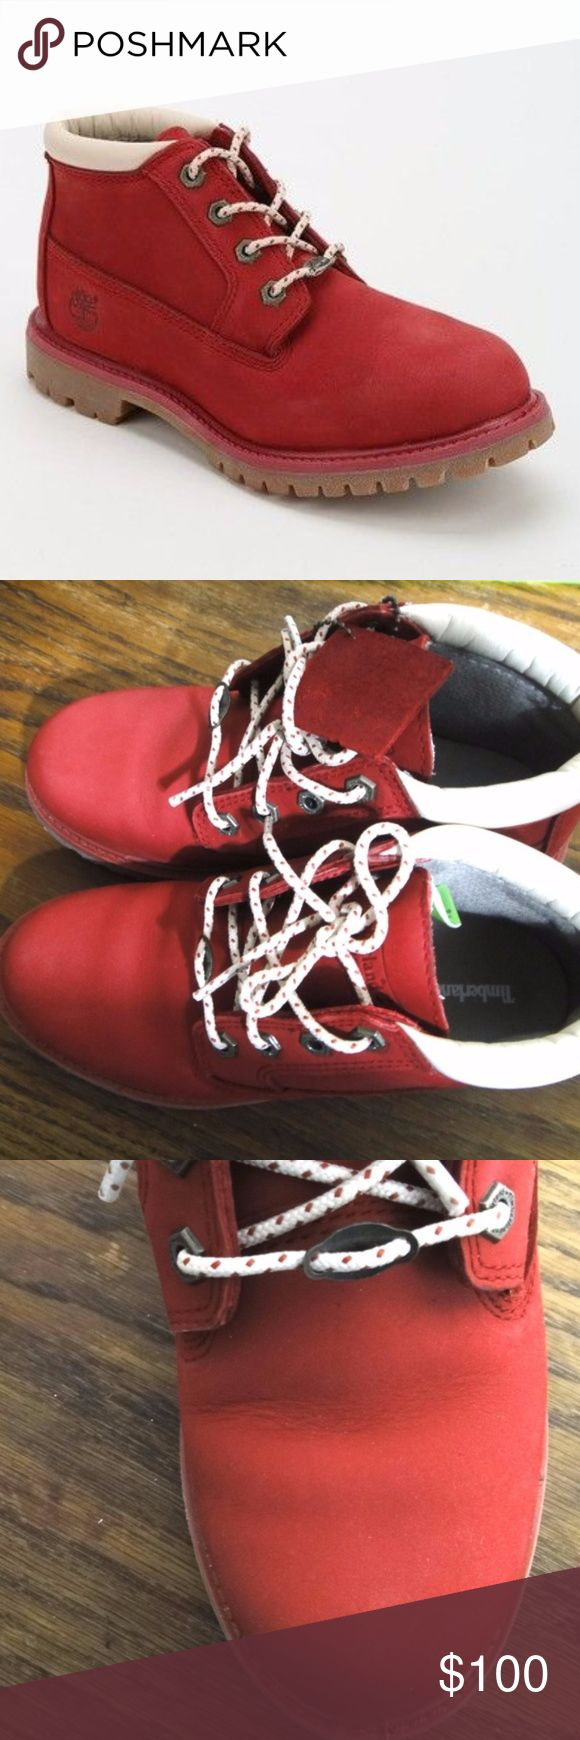 Timberland Nellie Boots Red Nubuck Barely worn and almost new,  you can see this from the condition of the soles. Original shoe box included. Timberland Shoes Ankle Boots & Booties